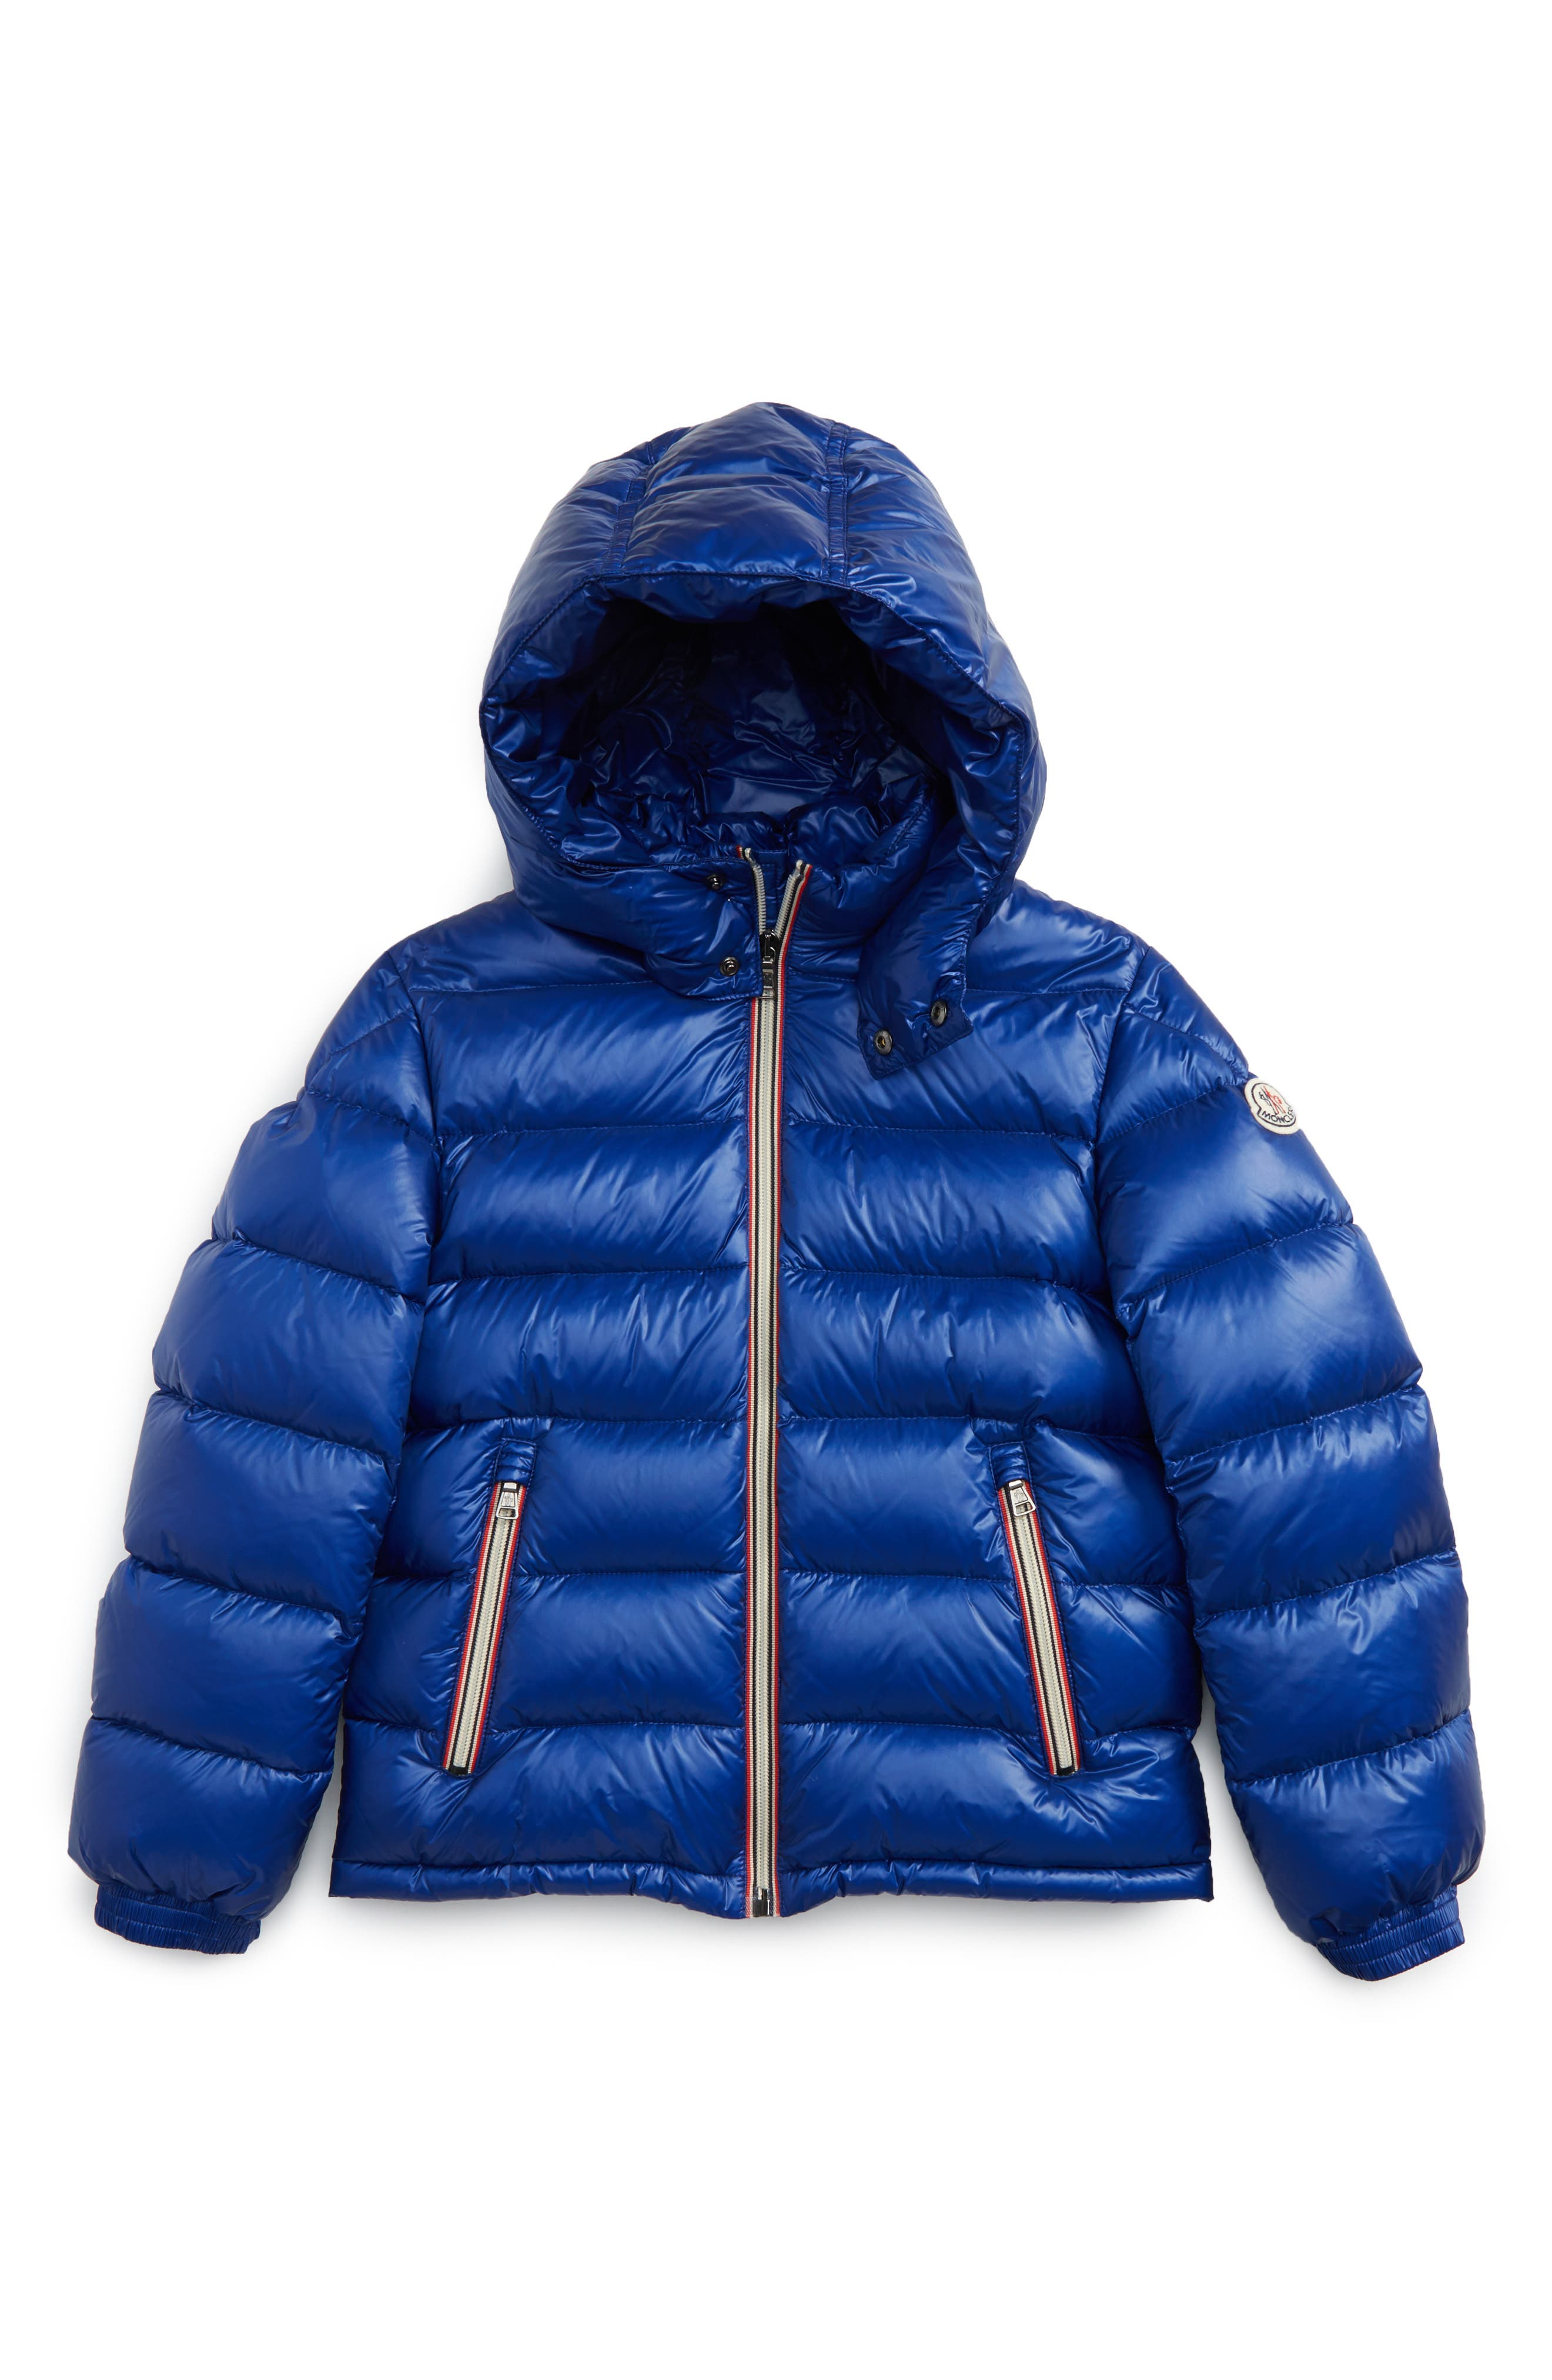 Main Image - Moncler New Gaston Hooded Water Resistant Down Jacket (Toddler Boys, Little Boys & Big Boys)